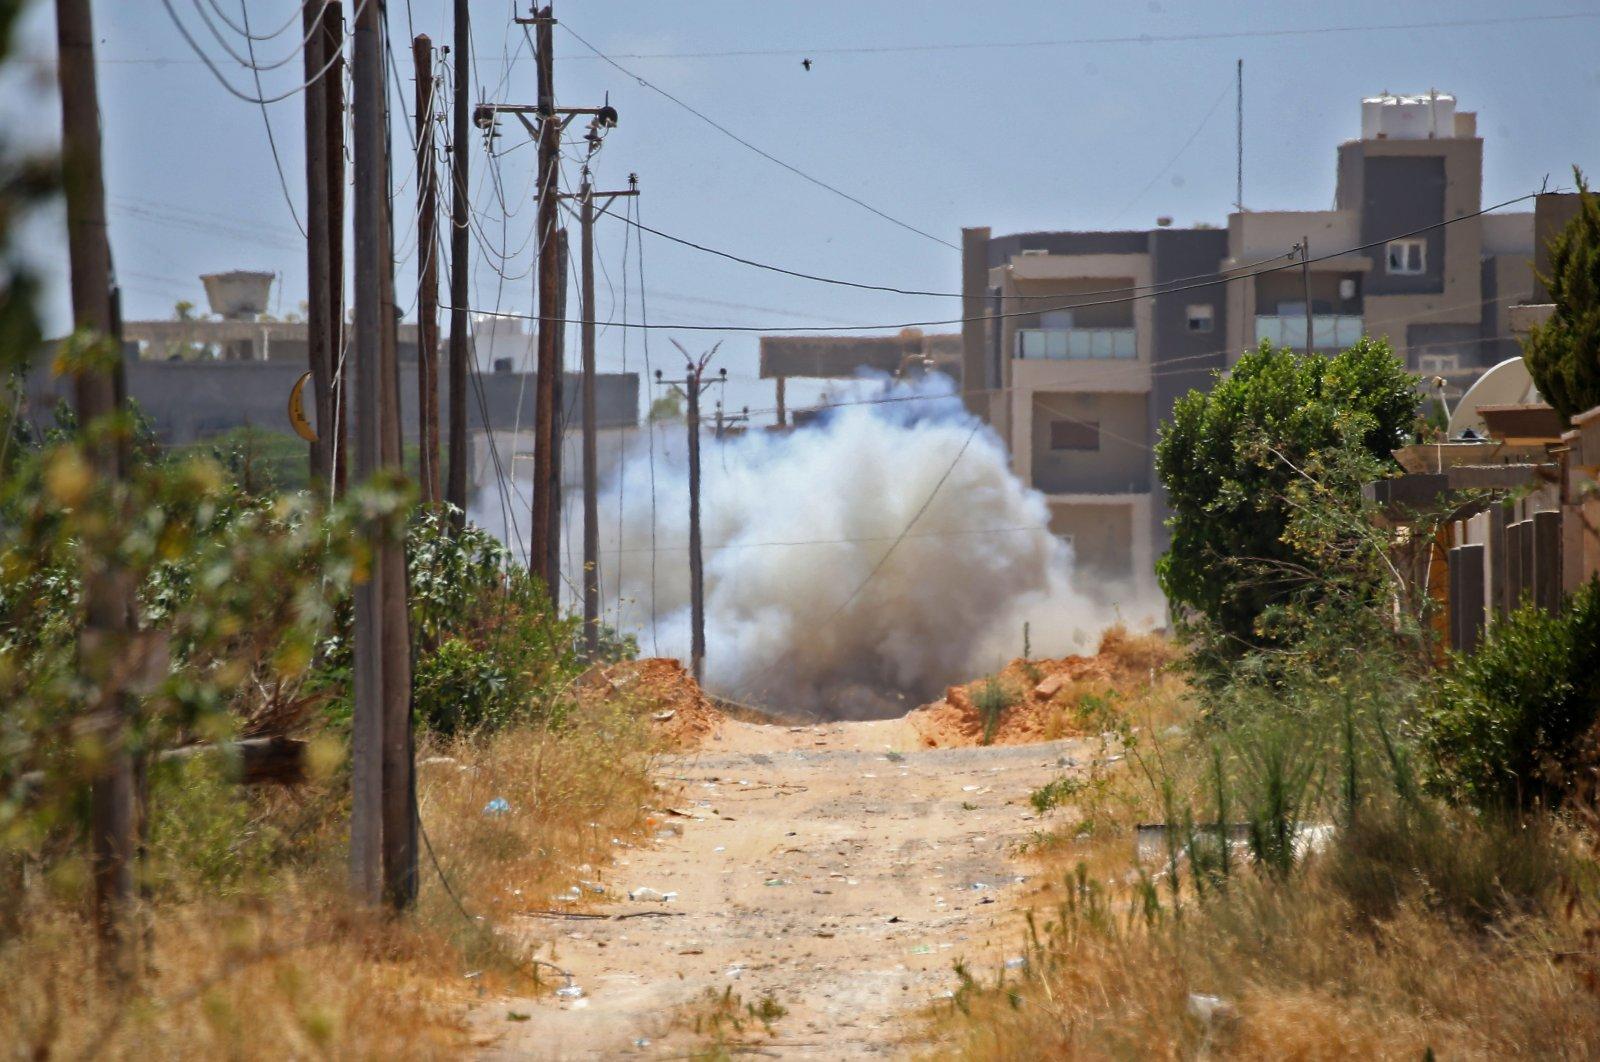 In this file photo, a landmine is exploded during Turkish demining operations in the Salah al-Din area, south of the Libyan capital Tripoli, June 15, 2020. (AFP Photo)